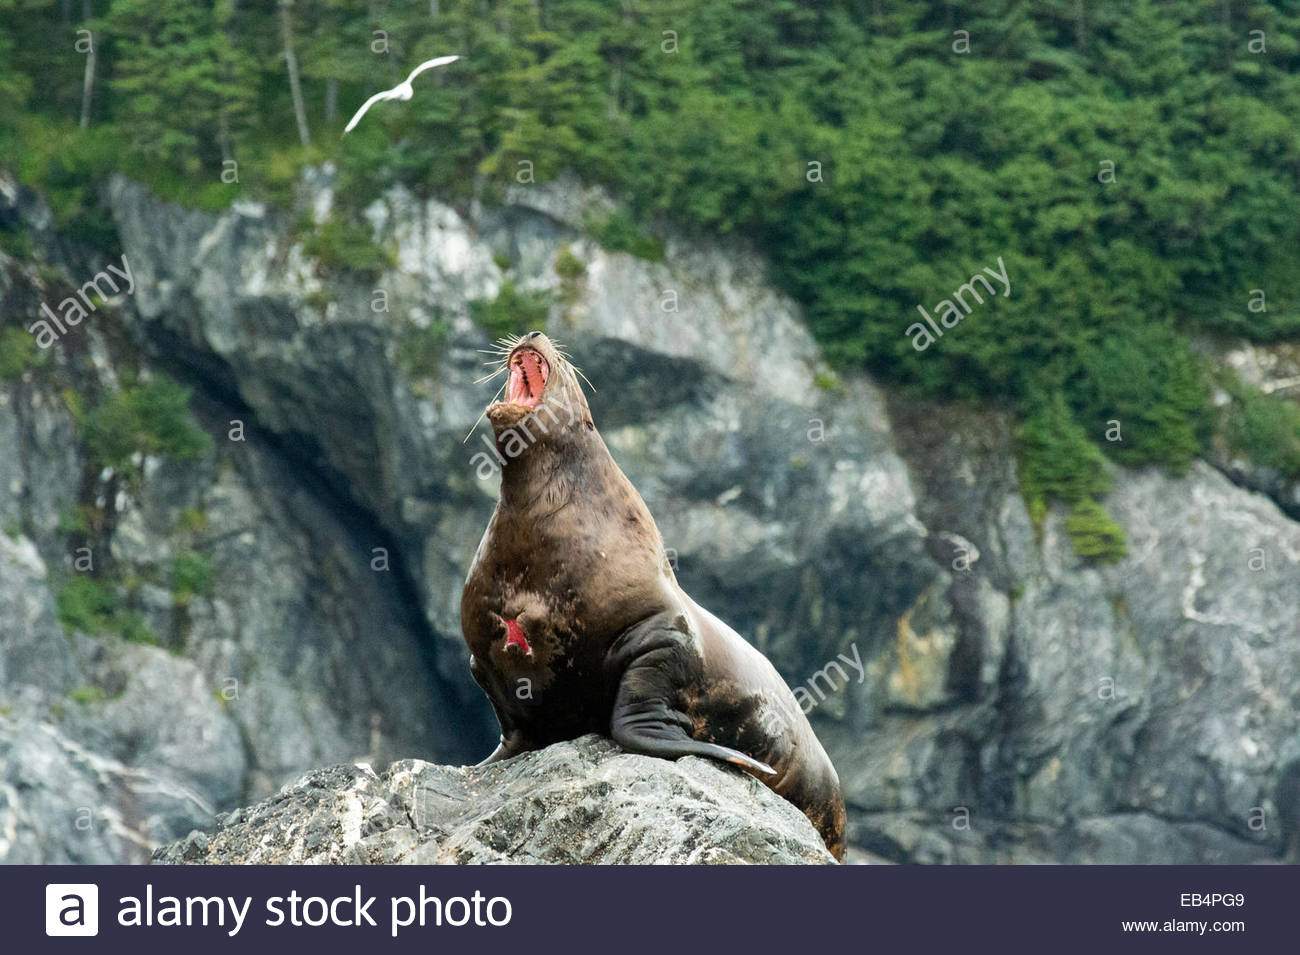 A wounded stellar sea lion (Eumetopias jubatus) barks from his perch on a rocky island. - Stock Image